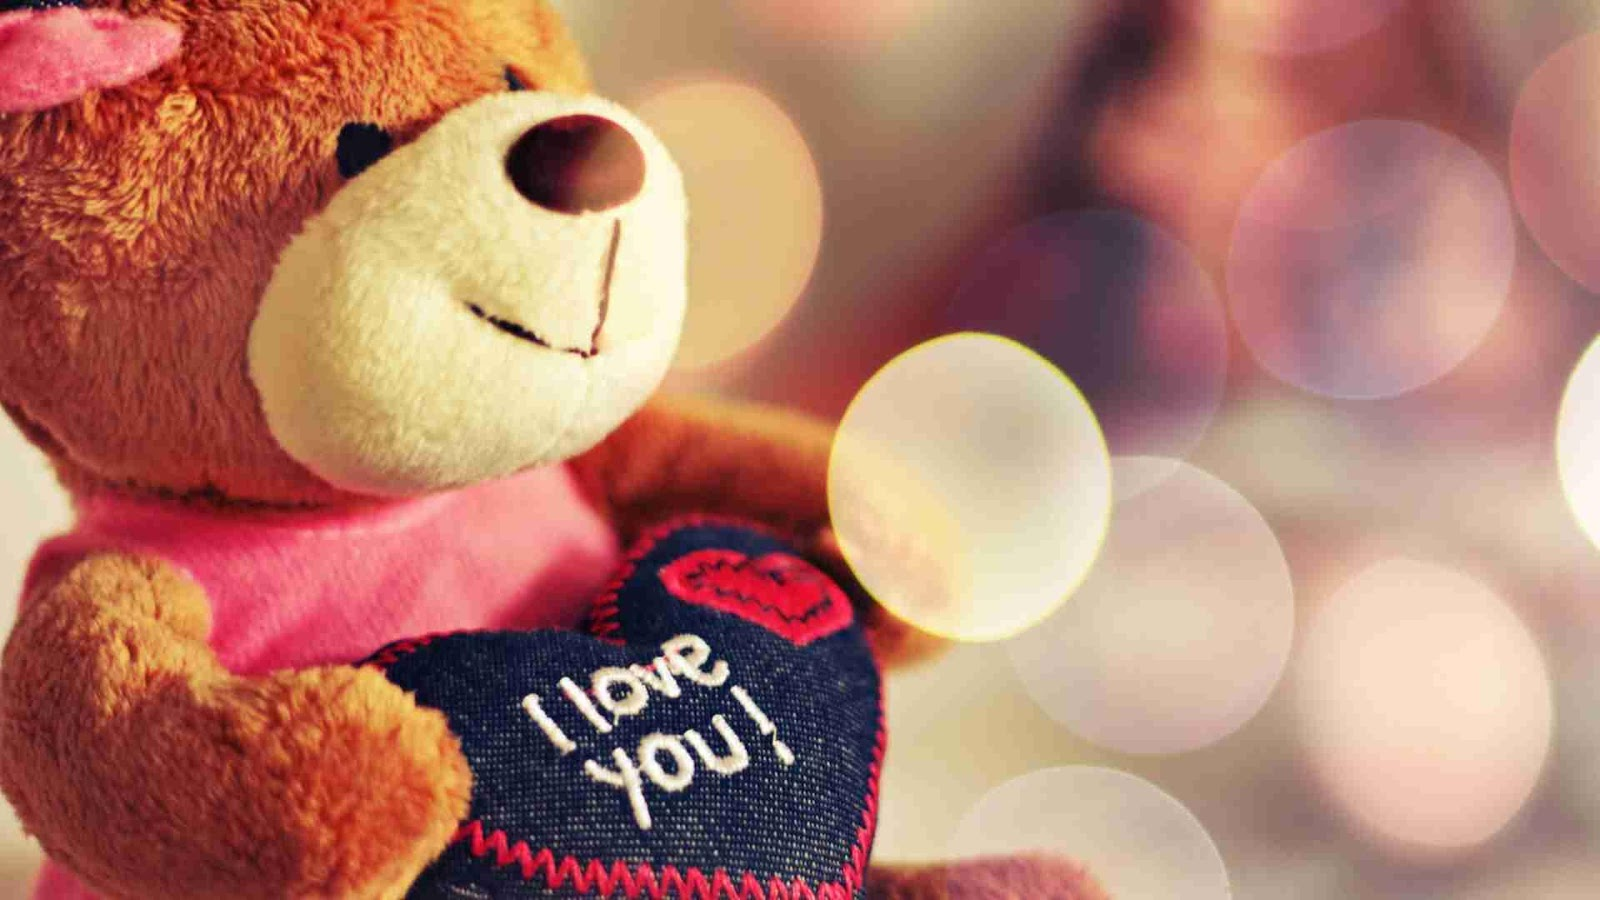 Wallpaper download karo - Wallpaper Download Karne Wala Apps Valentines Day Wallpapers 2016 1 0 Screenshot 2